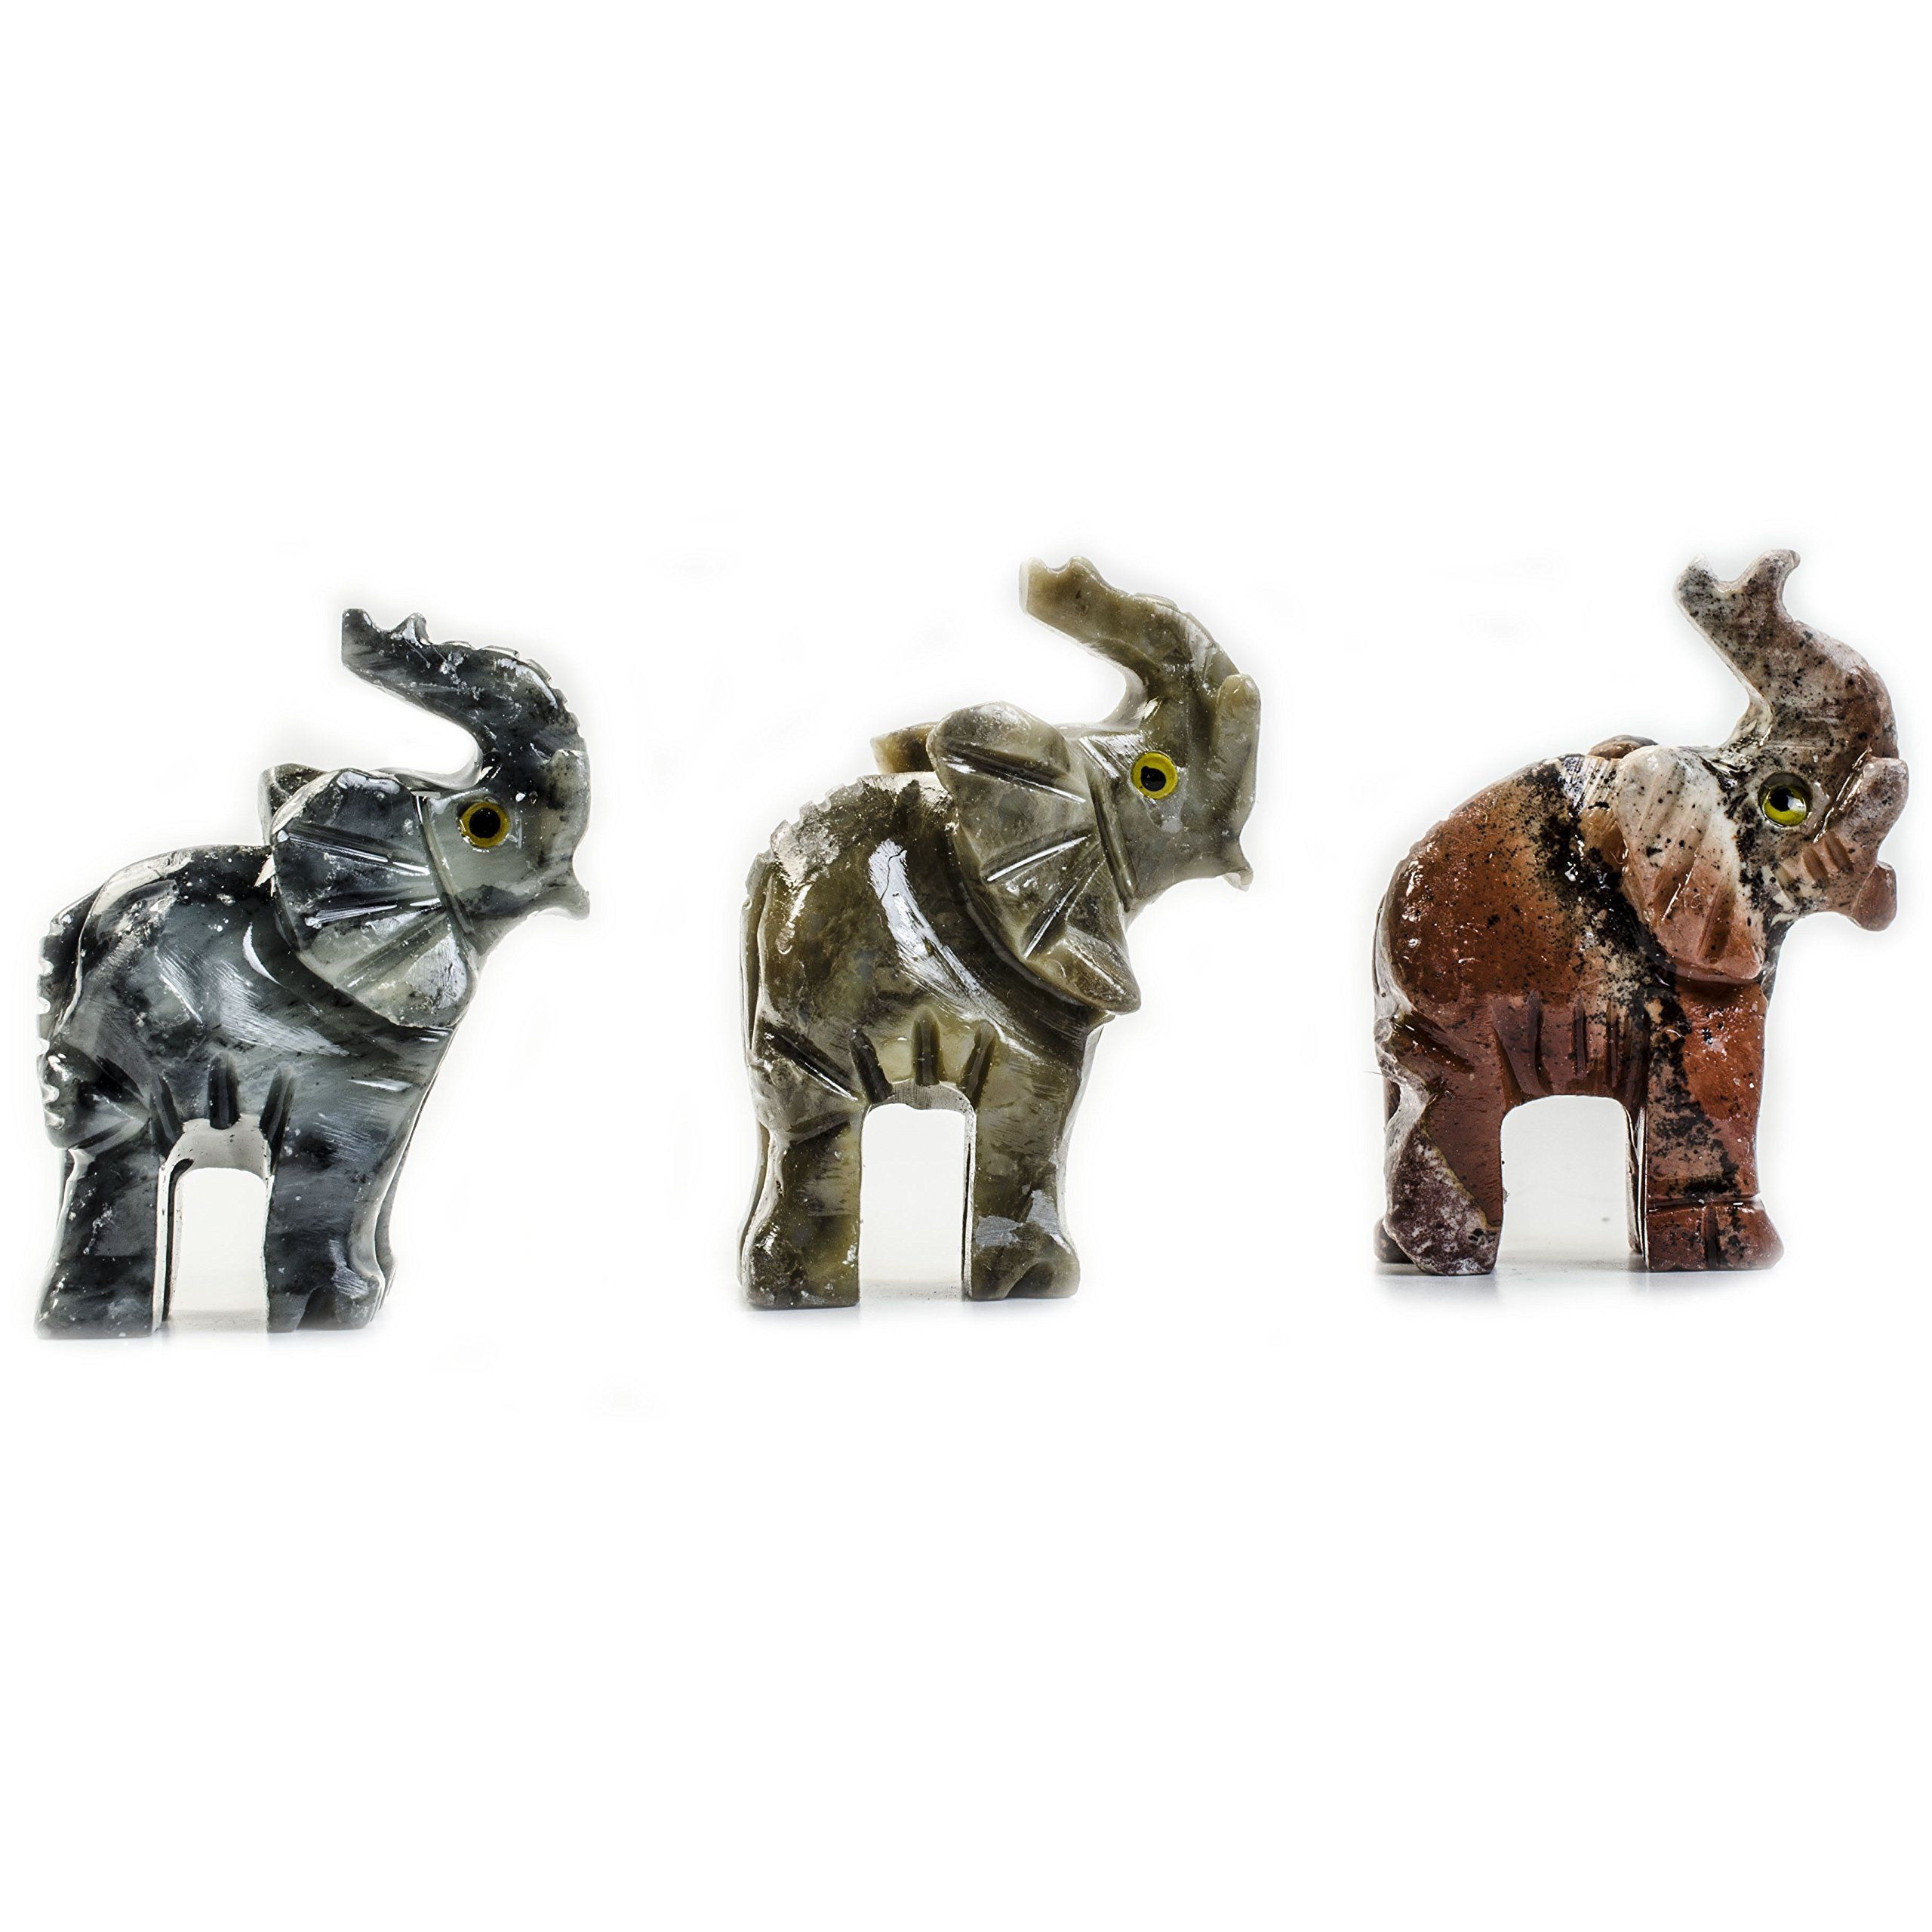 Digging Dolls : 10 pcs Artisan Elephant Collectable Animal Figurine - Party Favors, Stocking Stuffers, Gifts, Collecting and More!